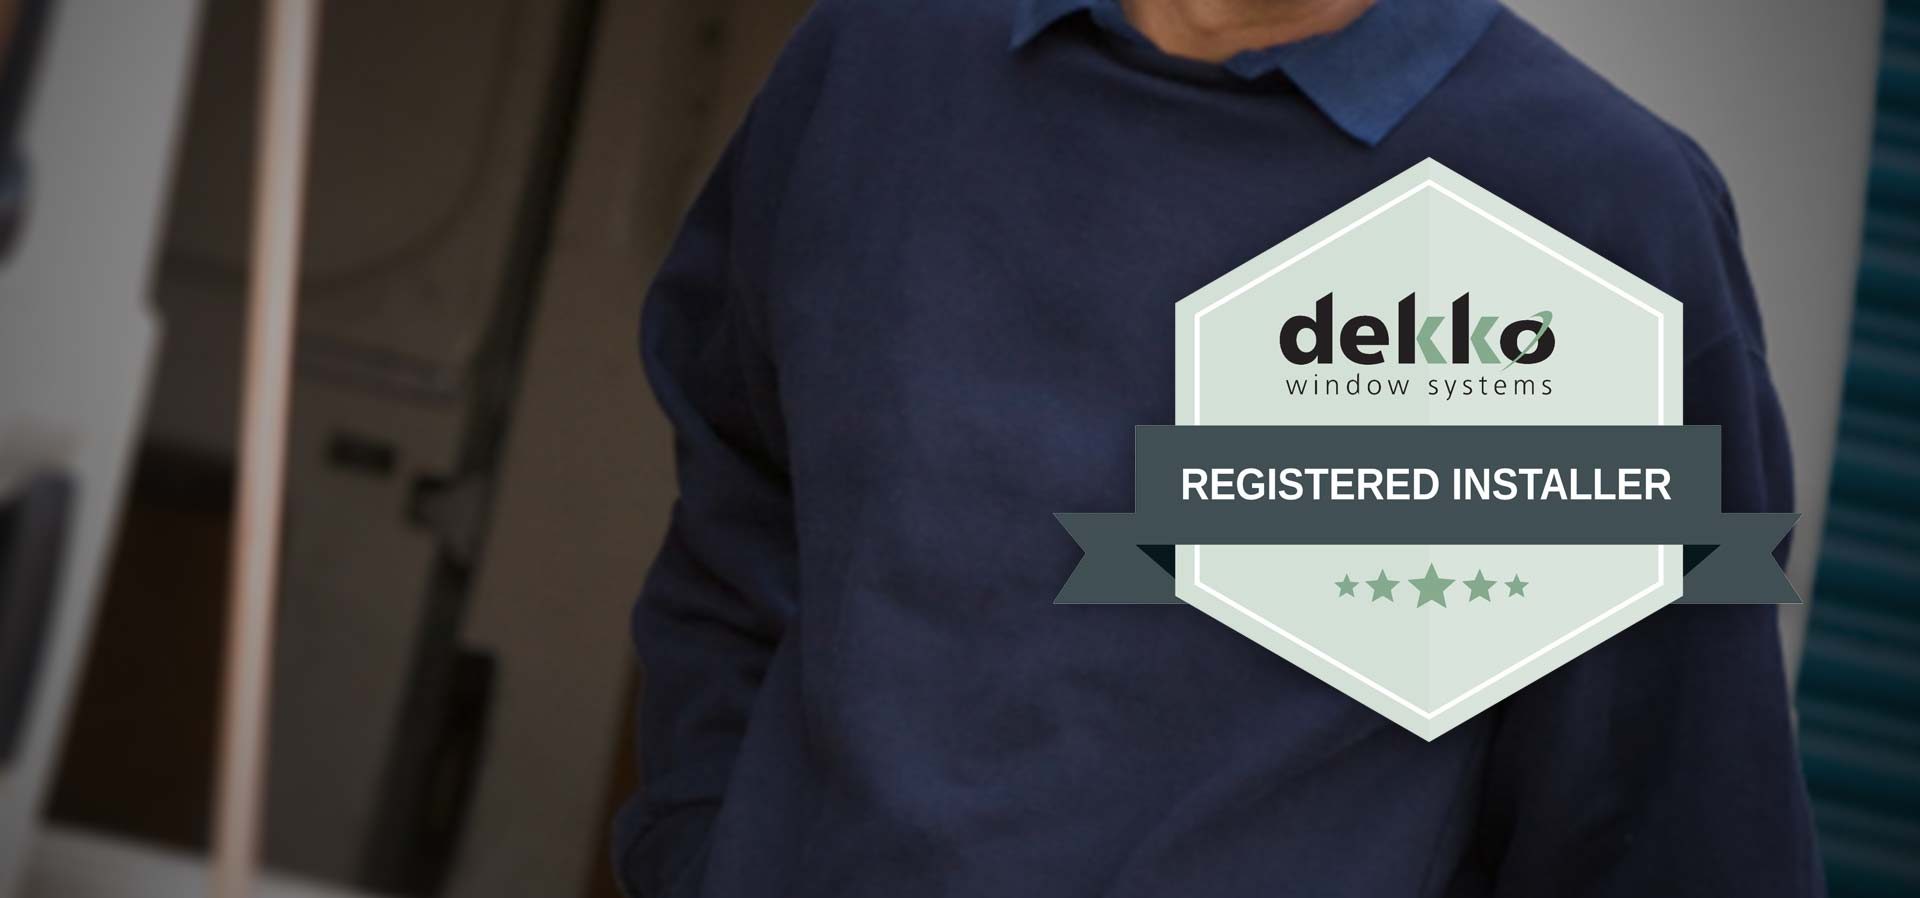 Dekko registered installer with badge